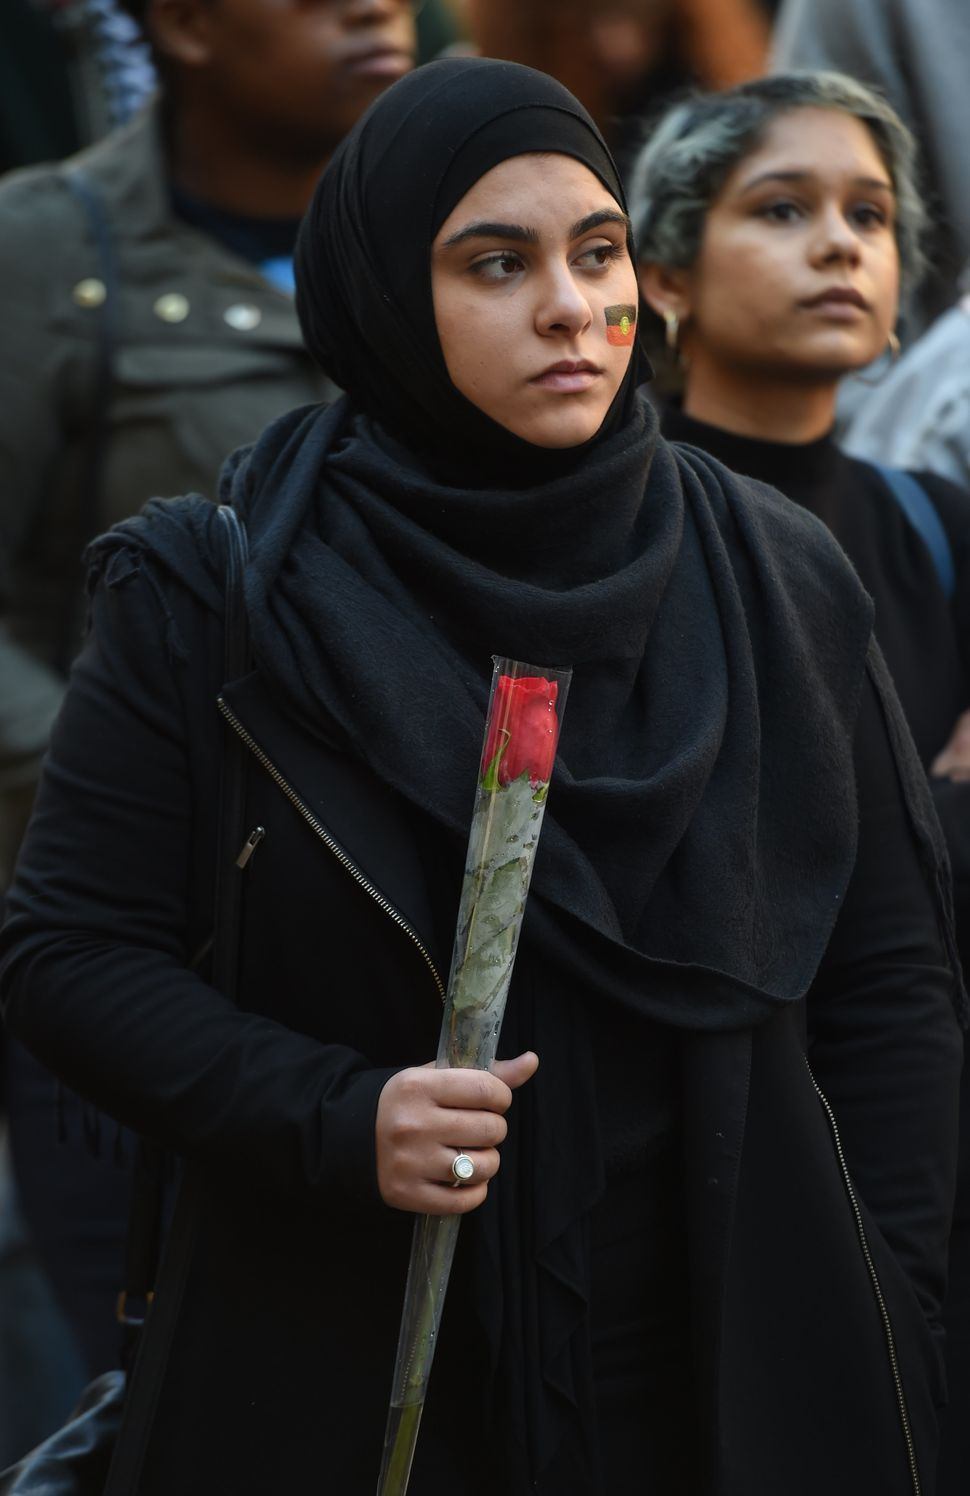 A Muslim woman holds a rose at a Black Lives Matter rally in Sydney on July 16, 2016. Some 300 people gathered at the rally i